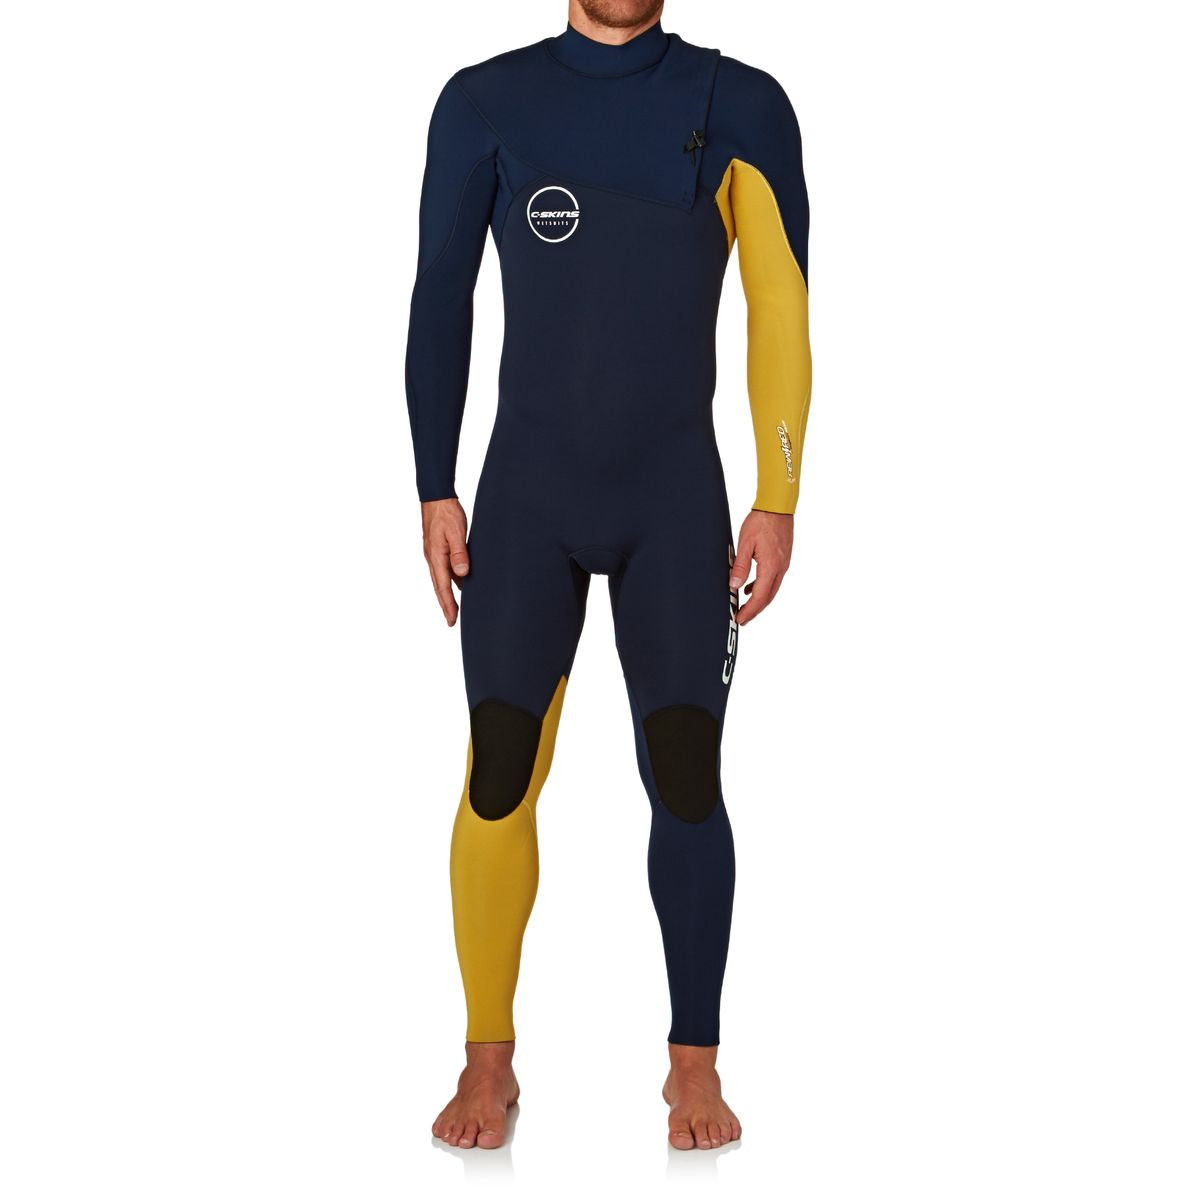 C-Skins Re-Wired 3/2mm 2017 Zipperless Wetsuit - Black Blue/ Mustard